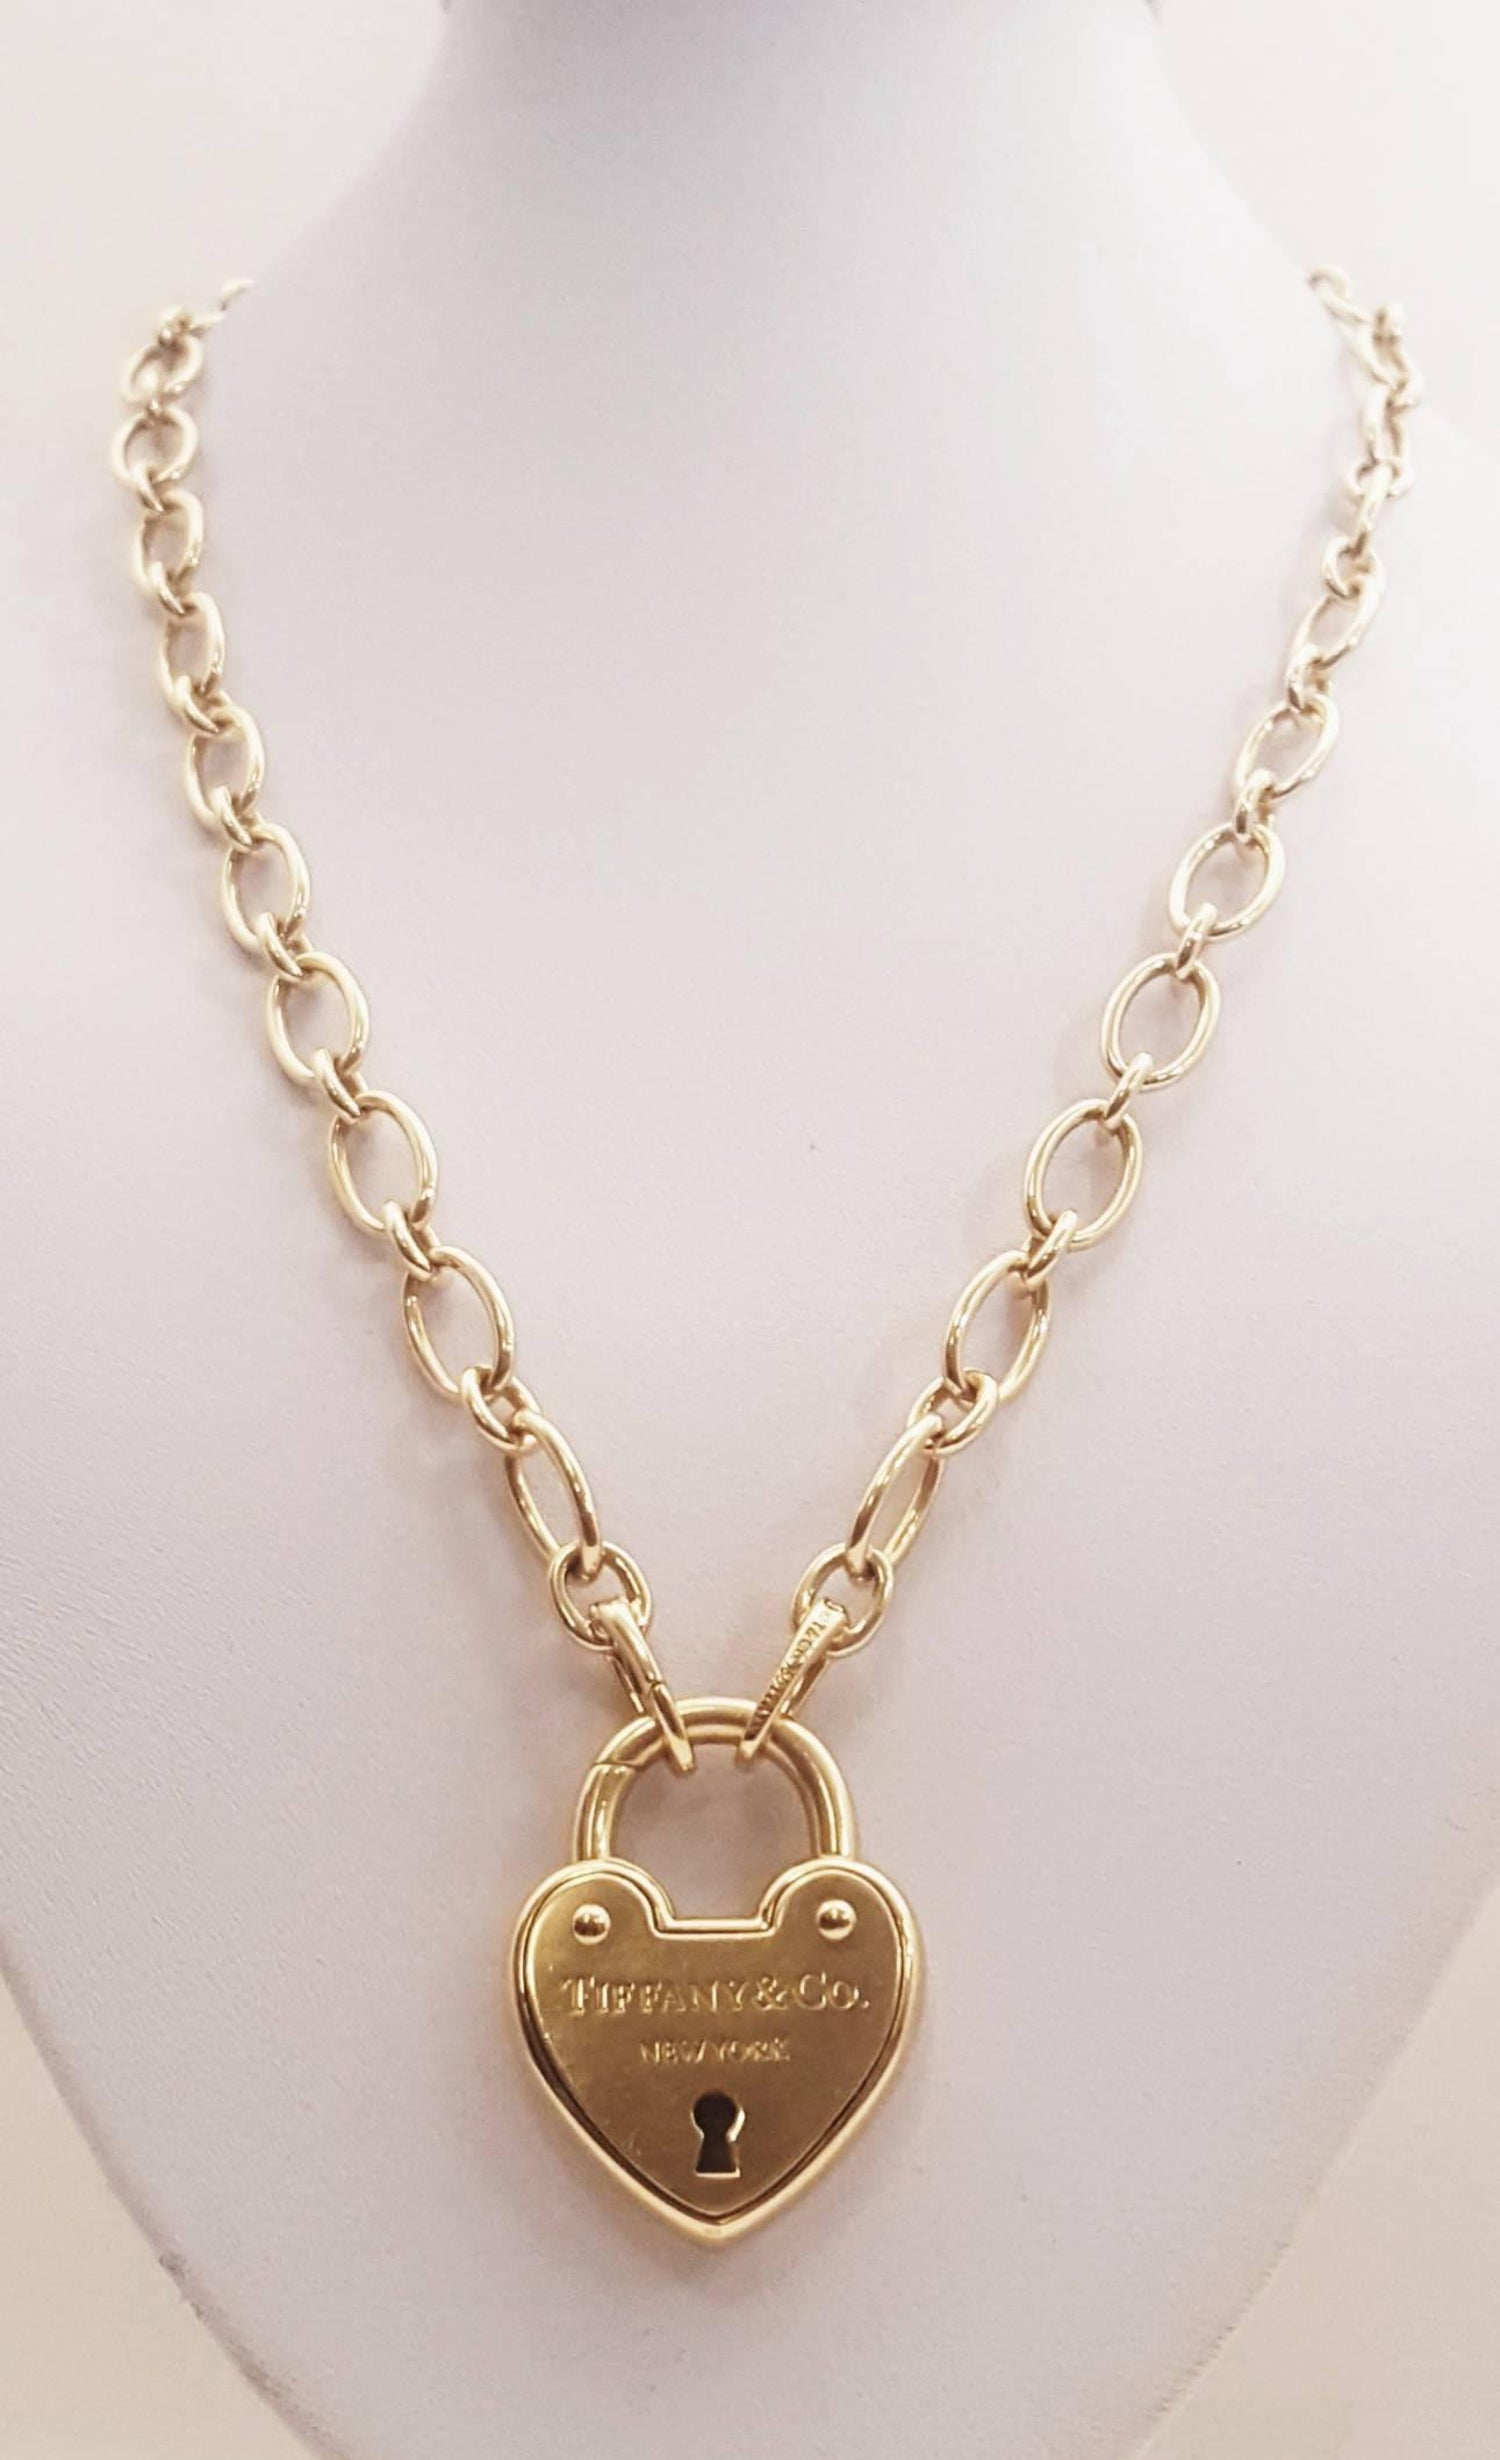 7092ab26a Tiffany and Co. 18 Karat Heart Lock Necklace at 1stdibs